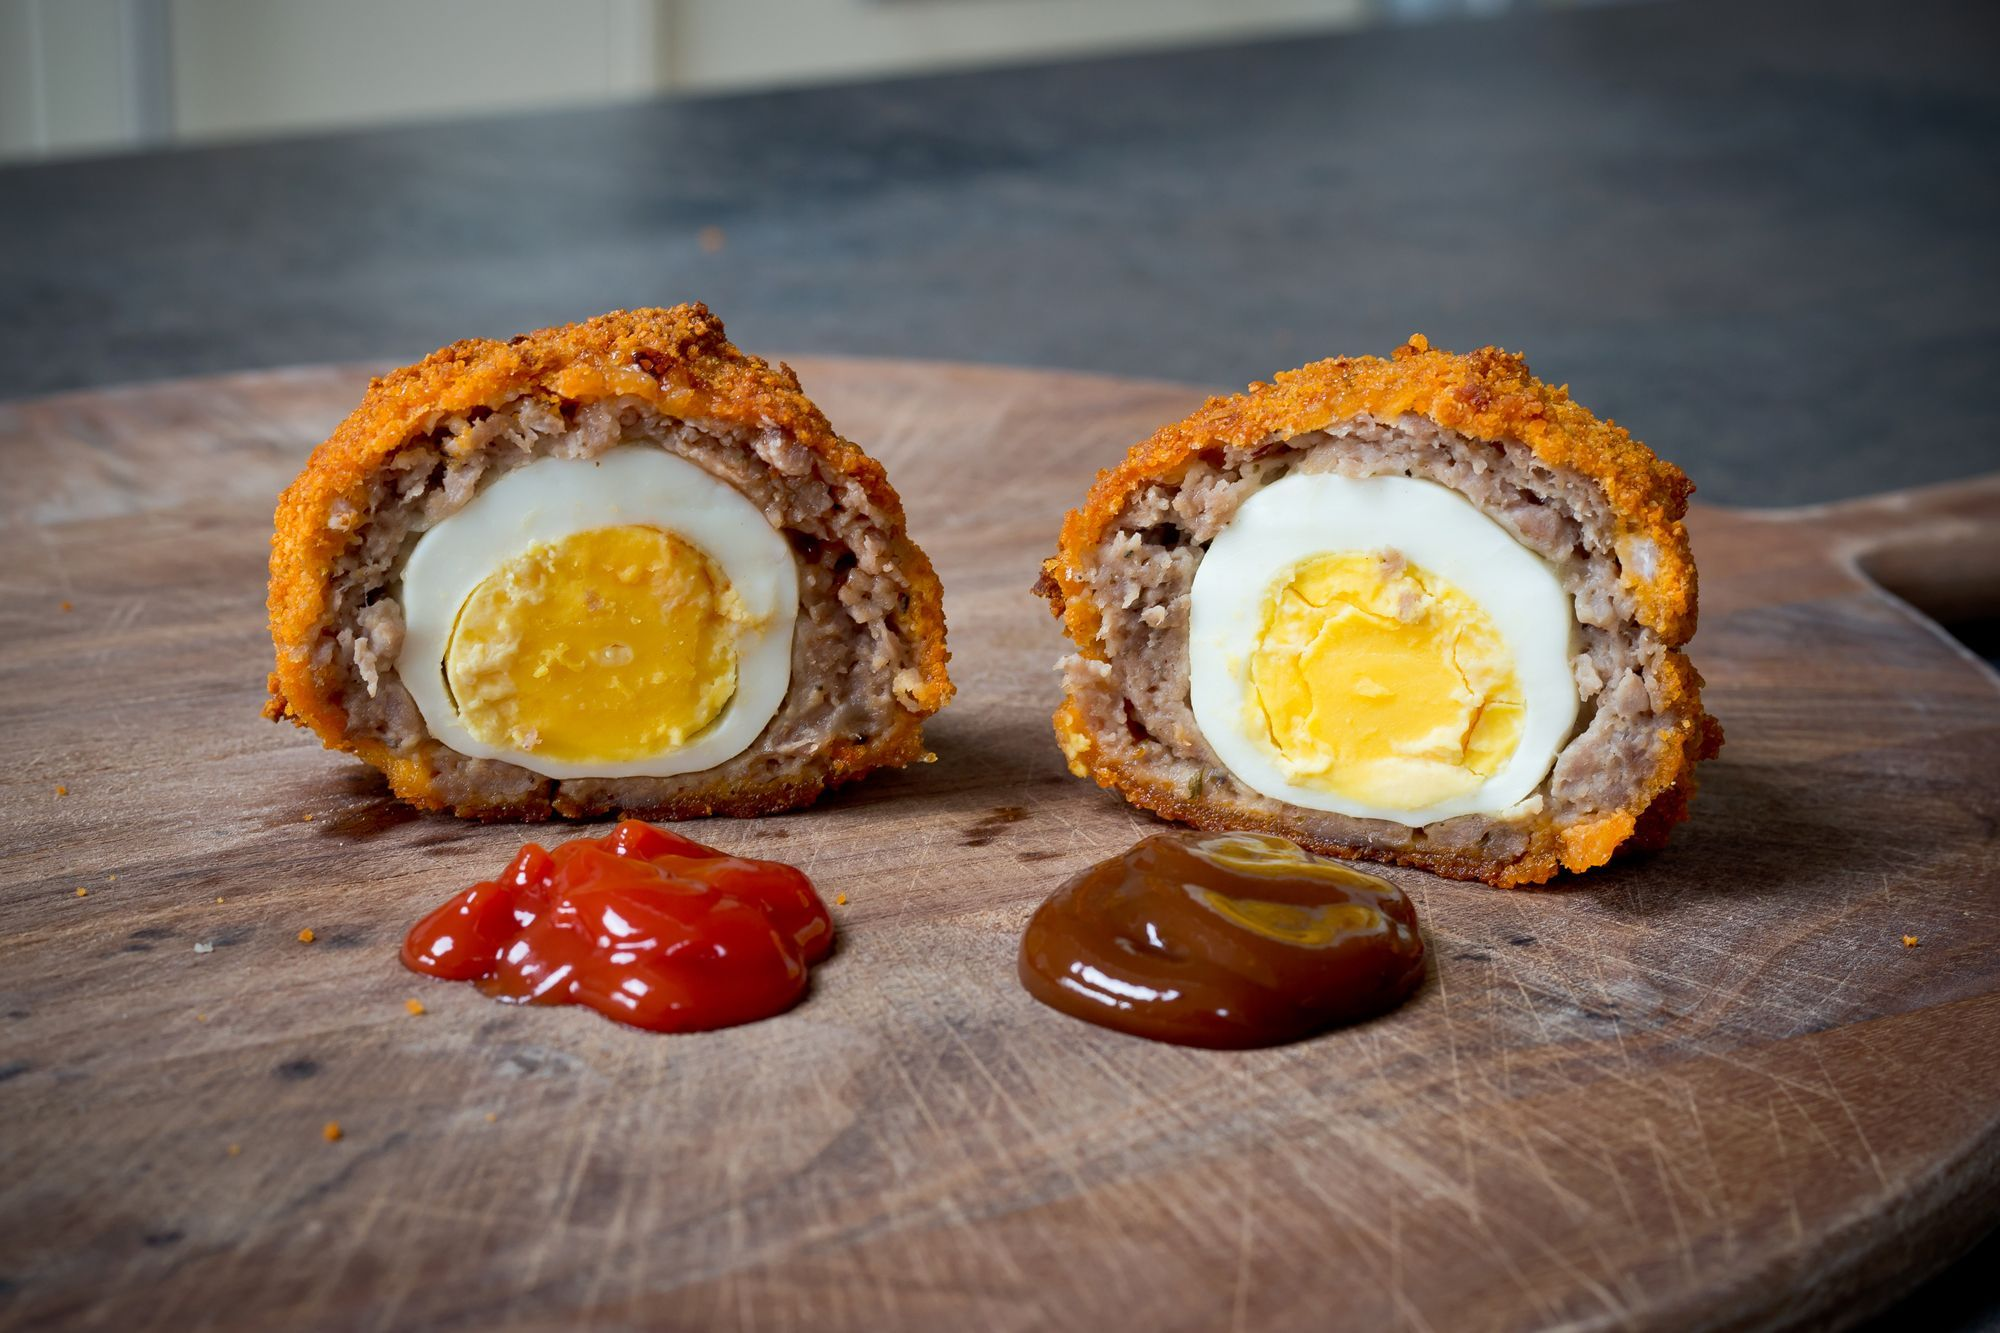 Baked Scotch Egg Recipe #scotcheggs Happy Easter! If you're looking for an alternative to chocolate eggs, here's our Scotch egg recipe. Oven baked, not fried! Please share this recipe if you think your friends would like it. #scotcheggs